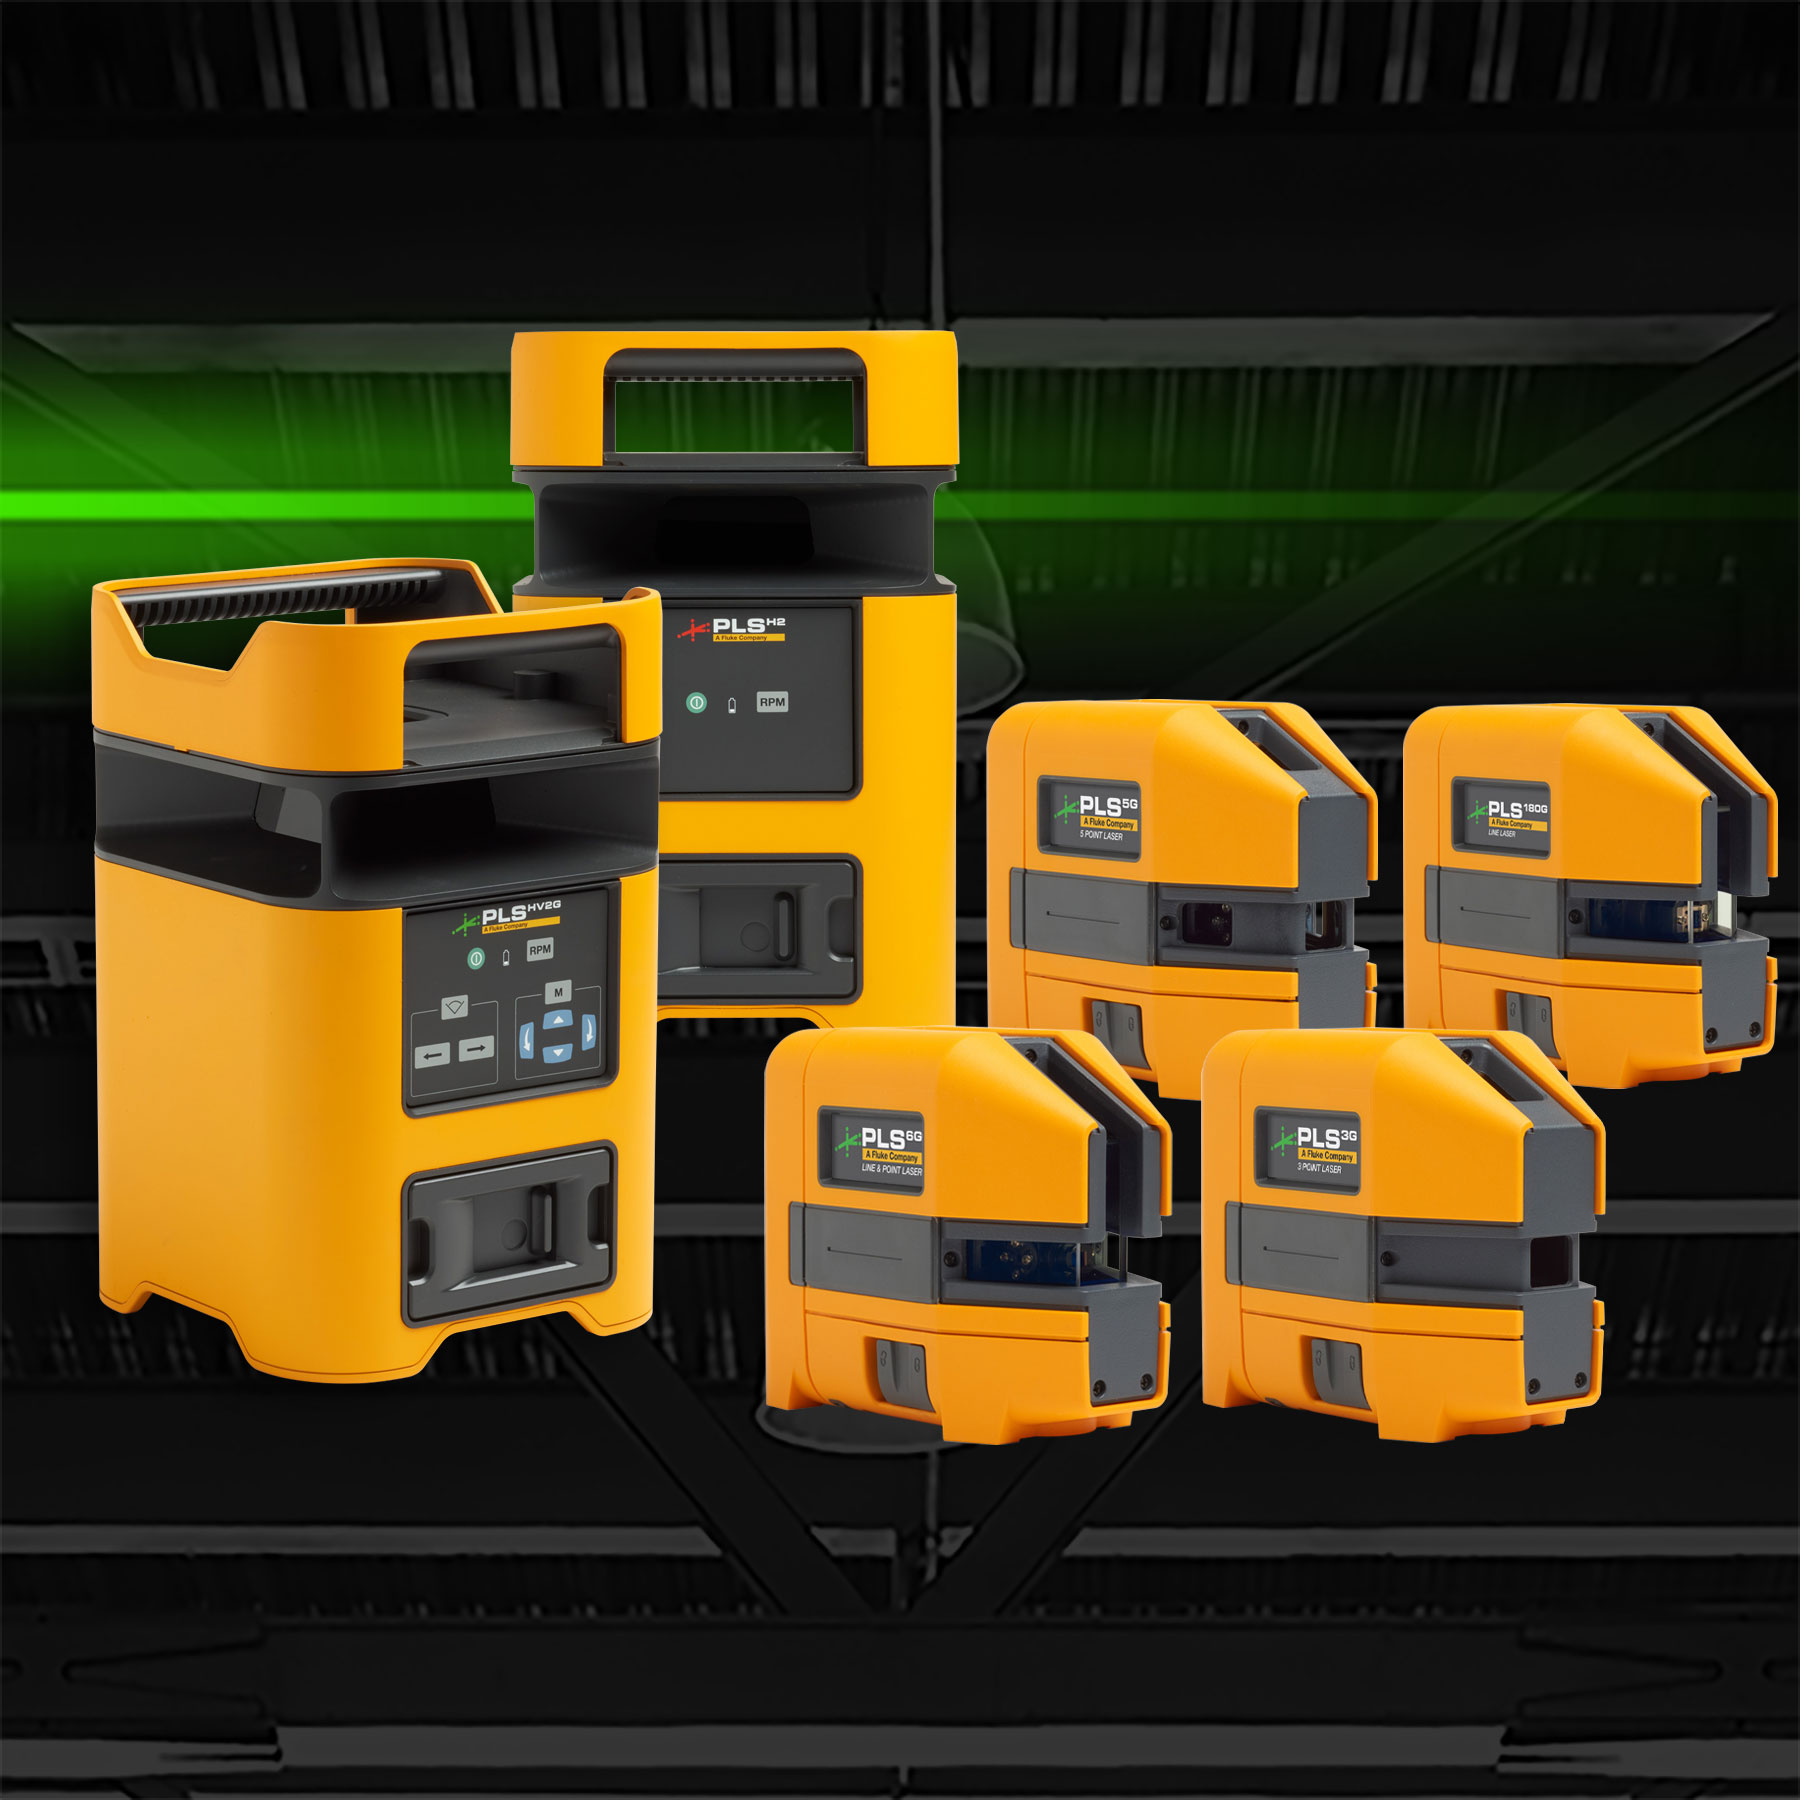 Pacific Laser Systems (PLS) launches rugged new laser level platform